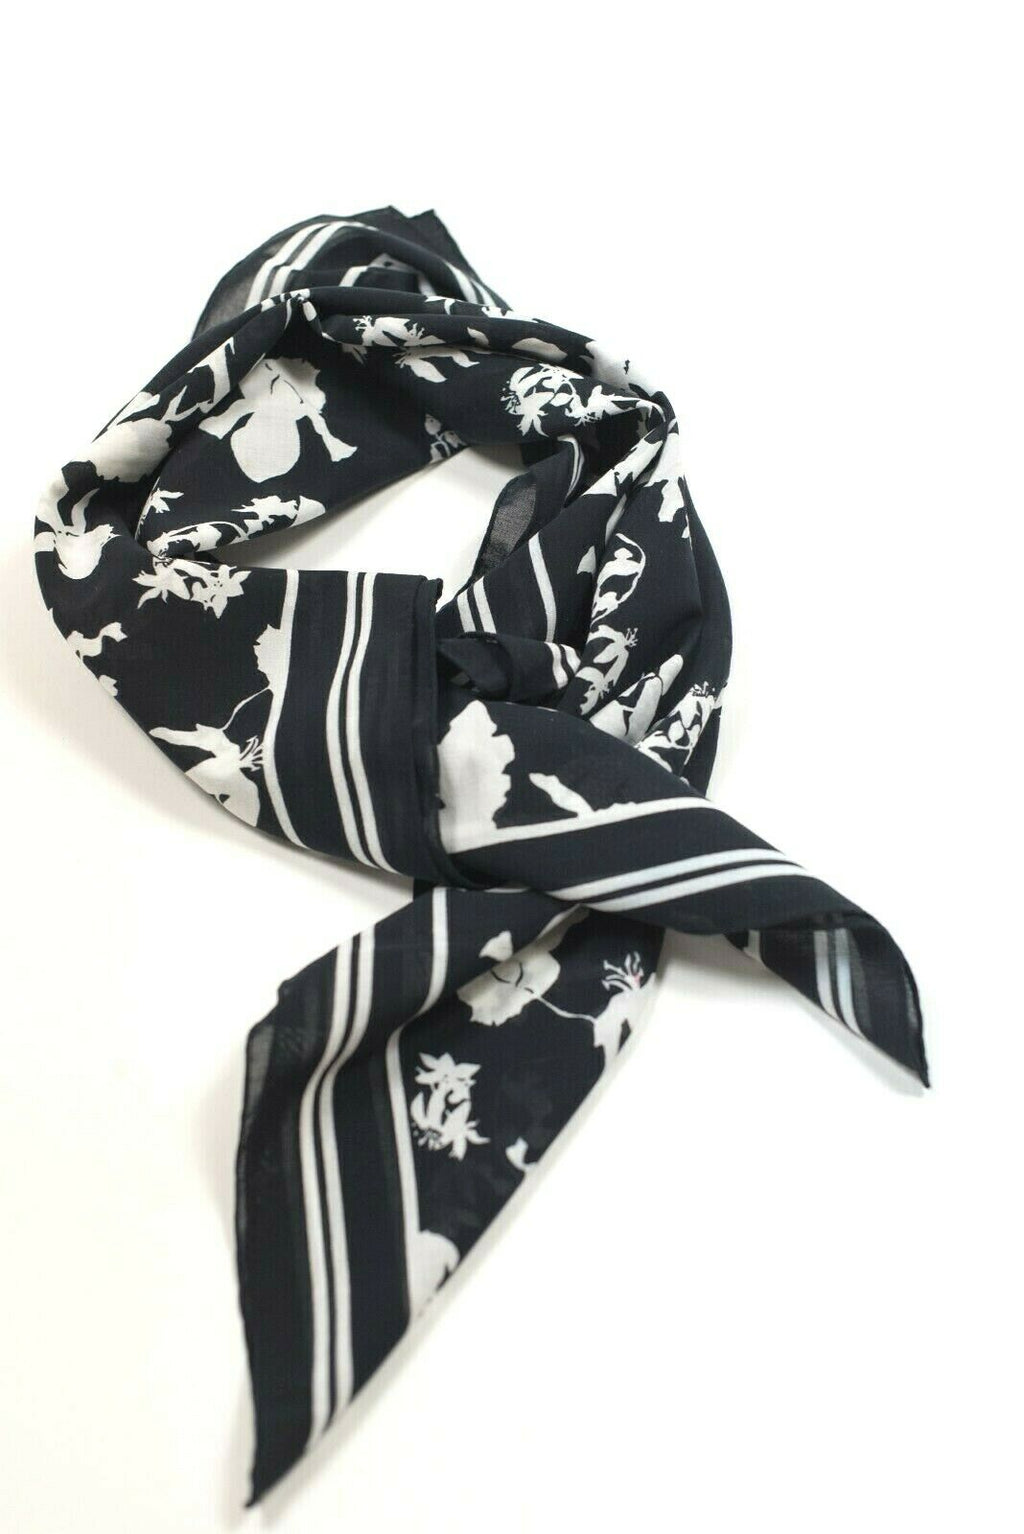 Michael Kors Collection Womens White Navy Blue Scarf Cotton Shawl Floral Printed